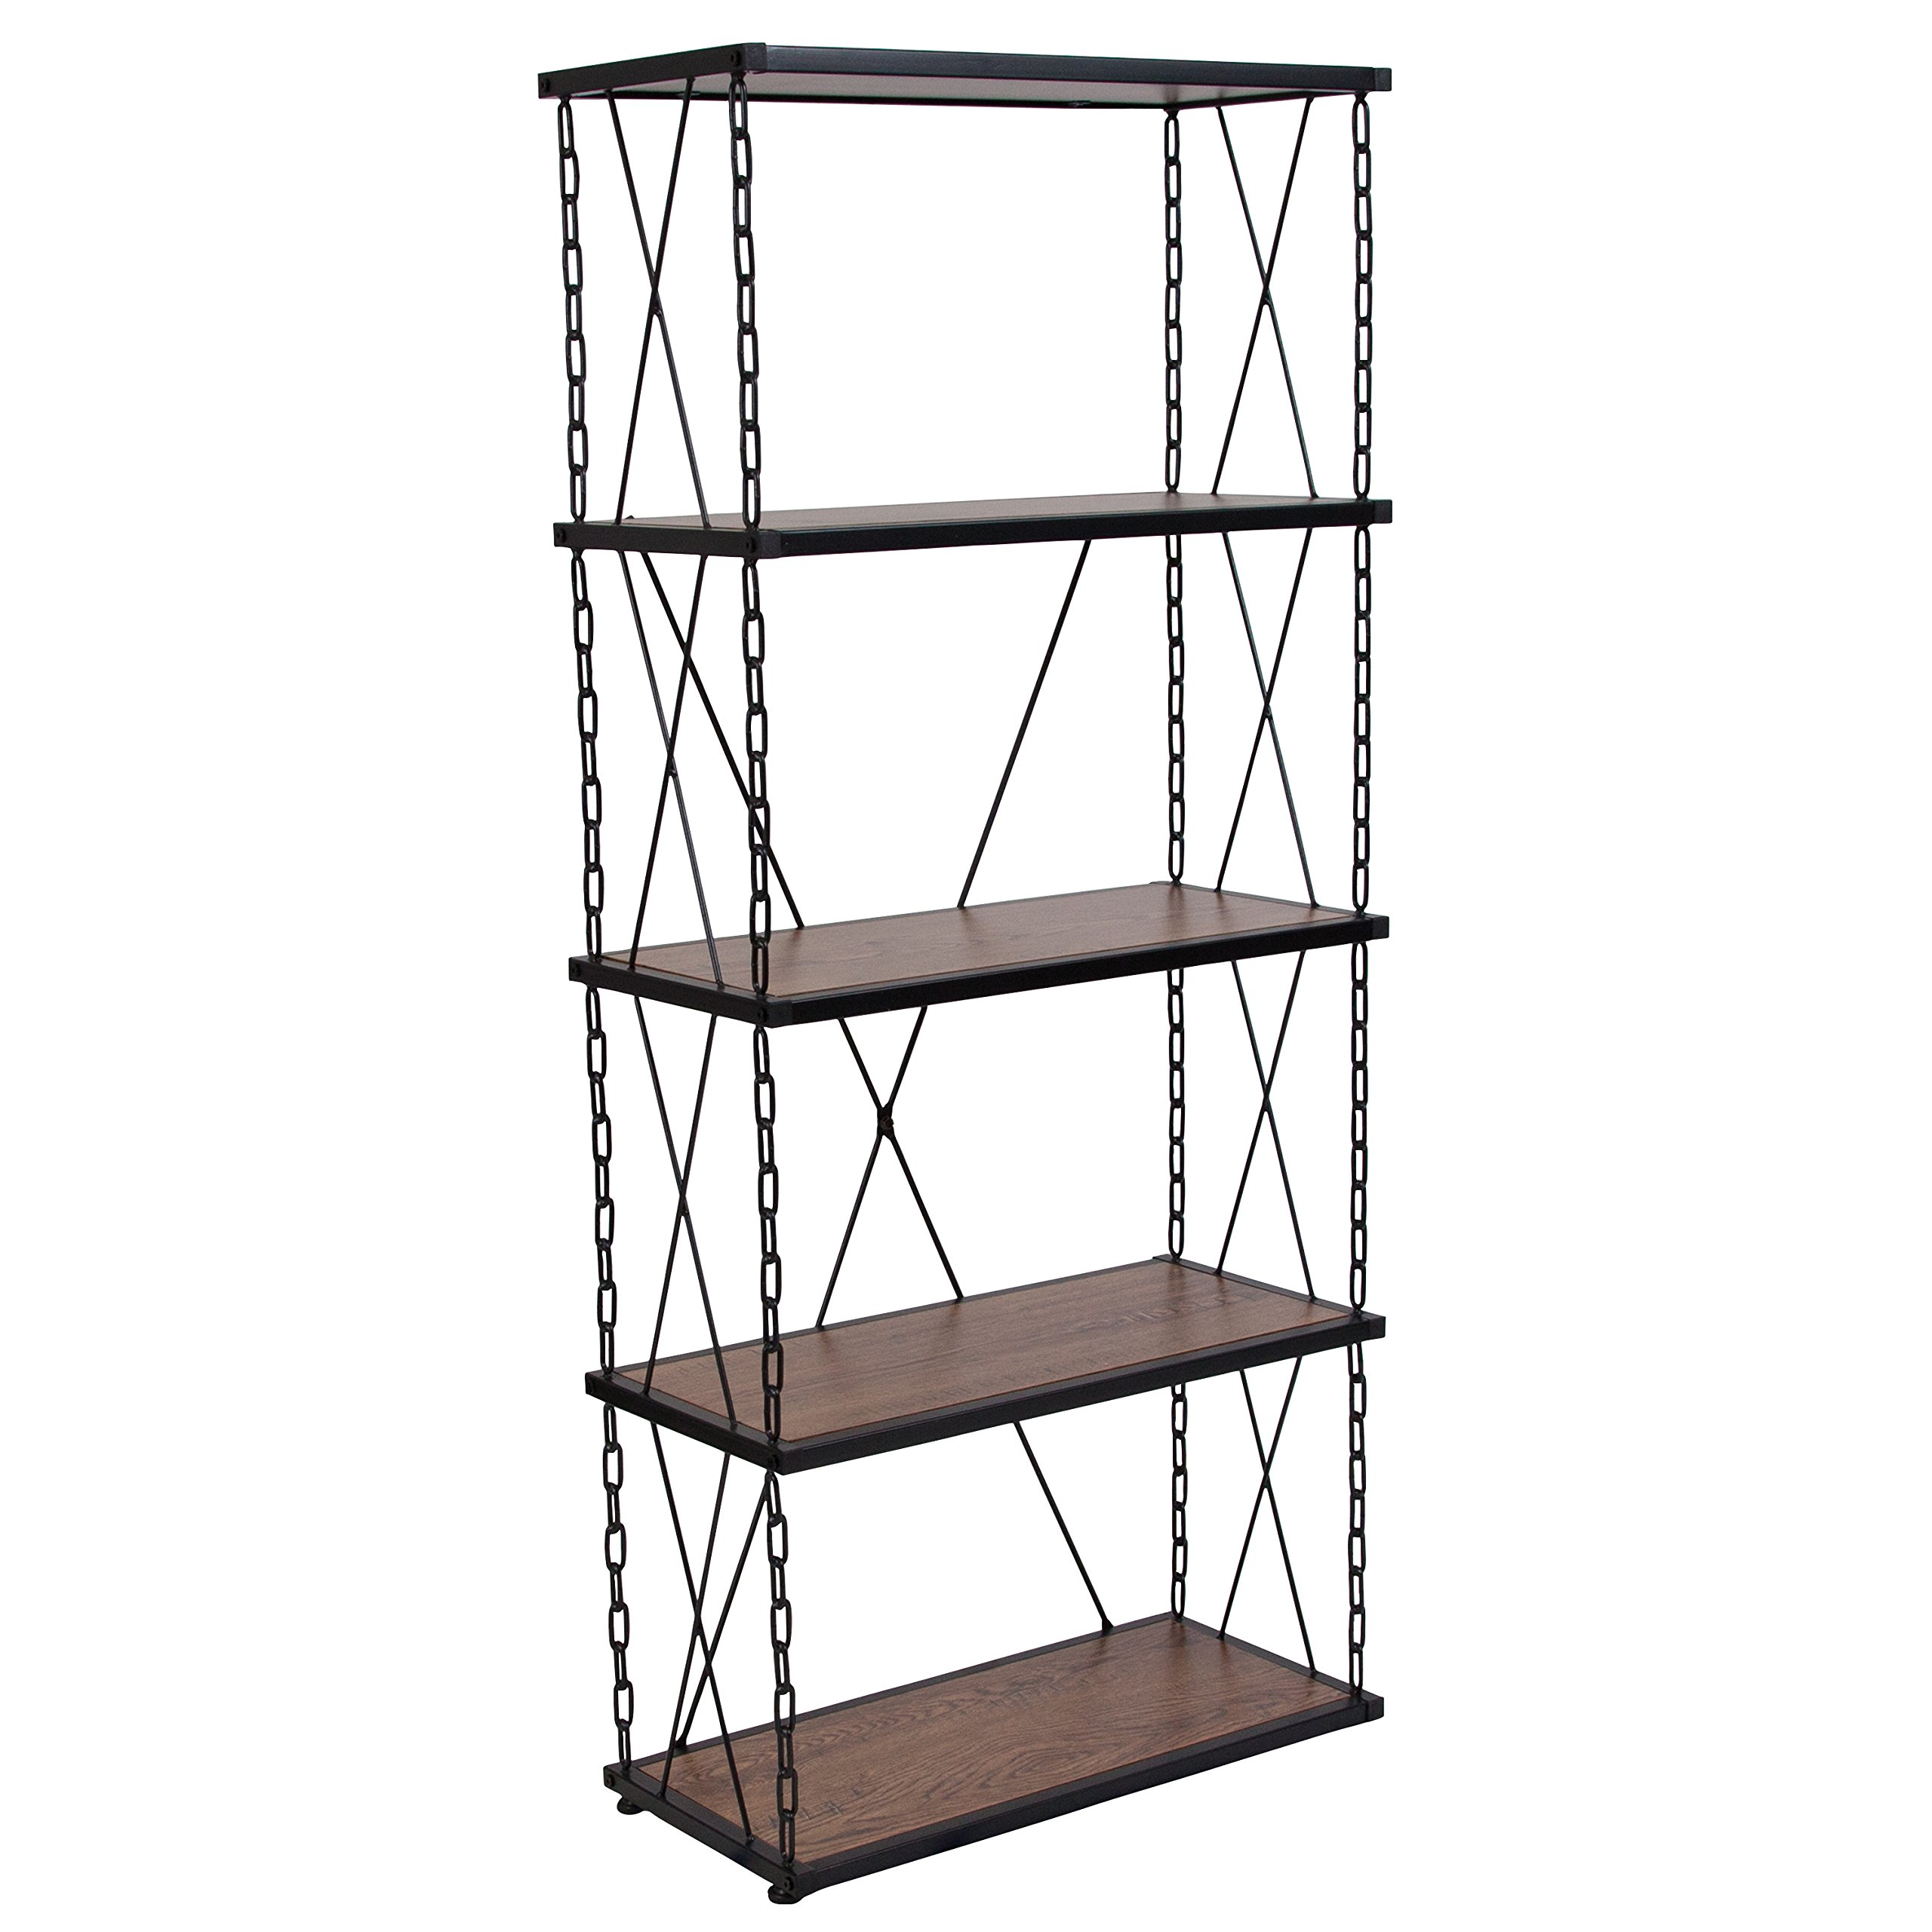 Flash Furniture Vernon Hills Collection Antique Wood Grain Finish Four Shelf Bookshelf with Chain Accent Metal Frame